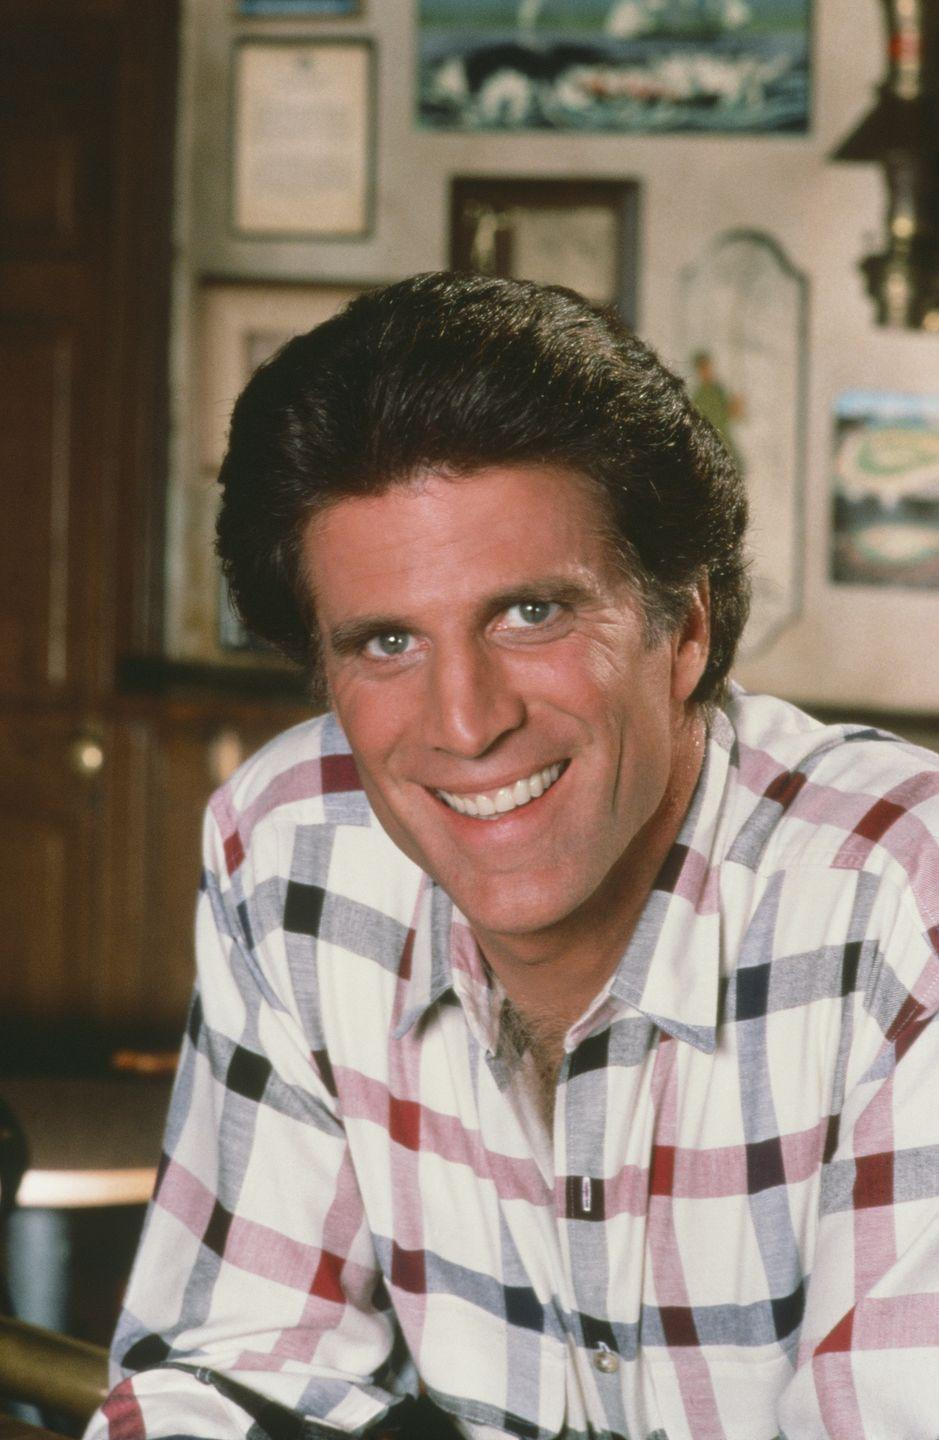 <p>America fell in love with Ted Danson on <em>Cheers—</em>and we think his full head of hair could have had something to do with that. It was just so...impressive.</p>